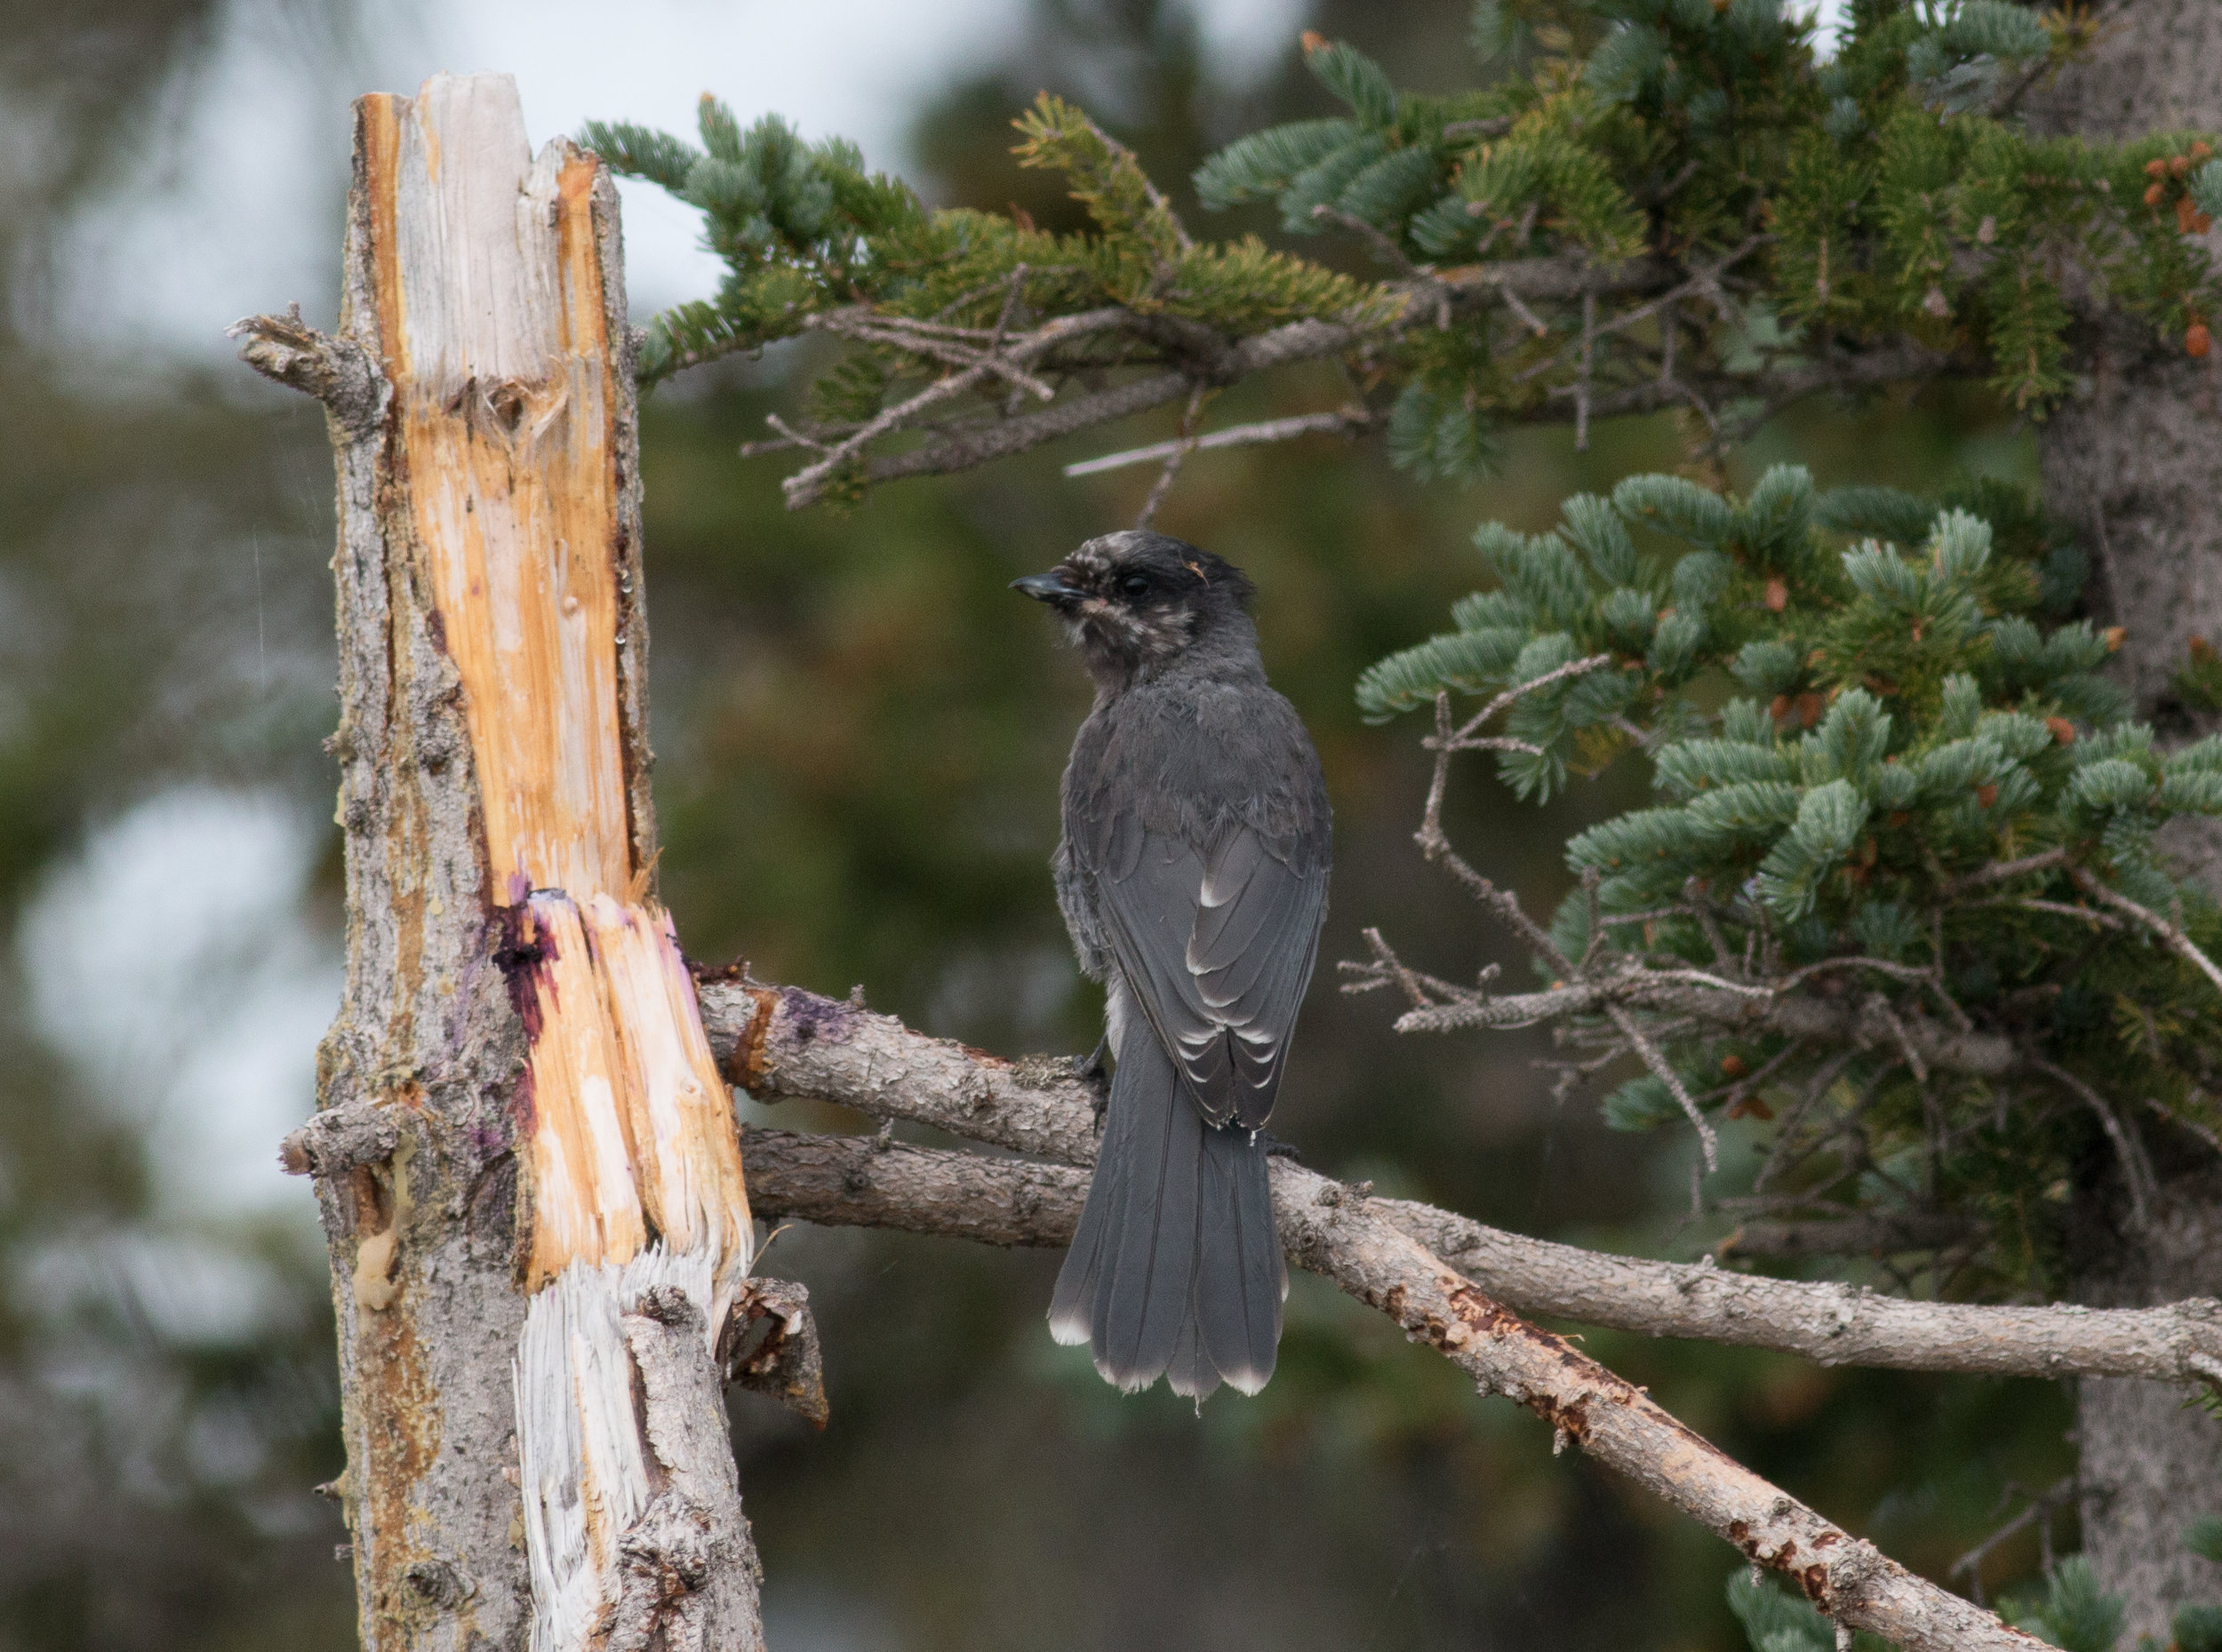 Canada Jay. Hanging out safely in the trees, far from the Savannah Sparrows in tidal areas.